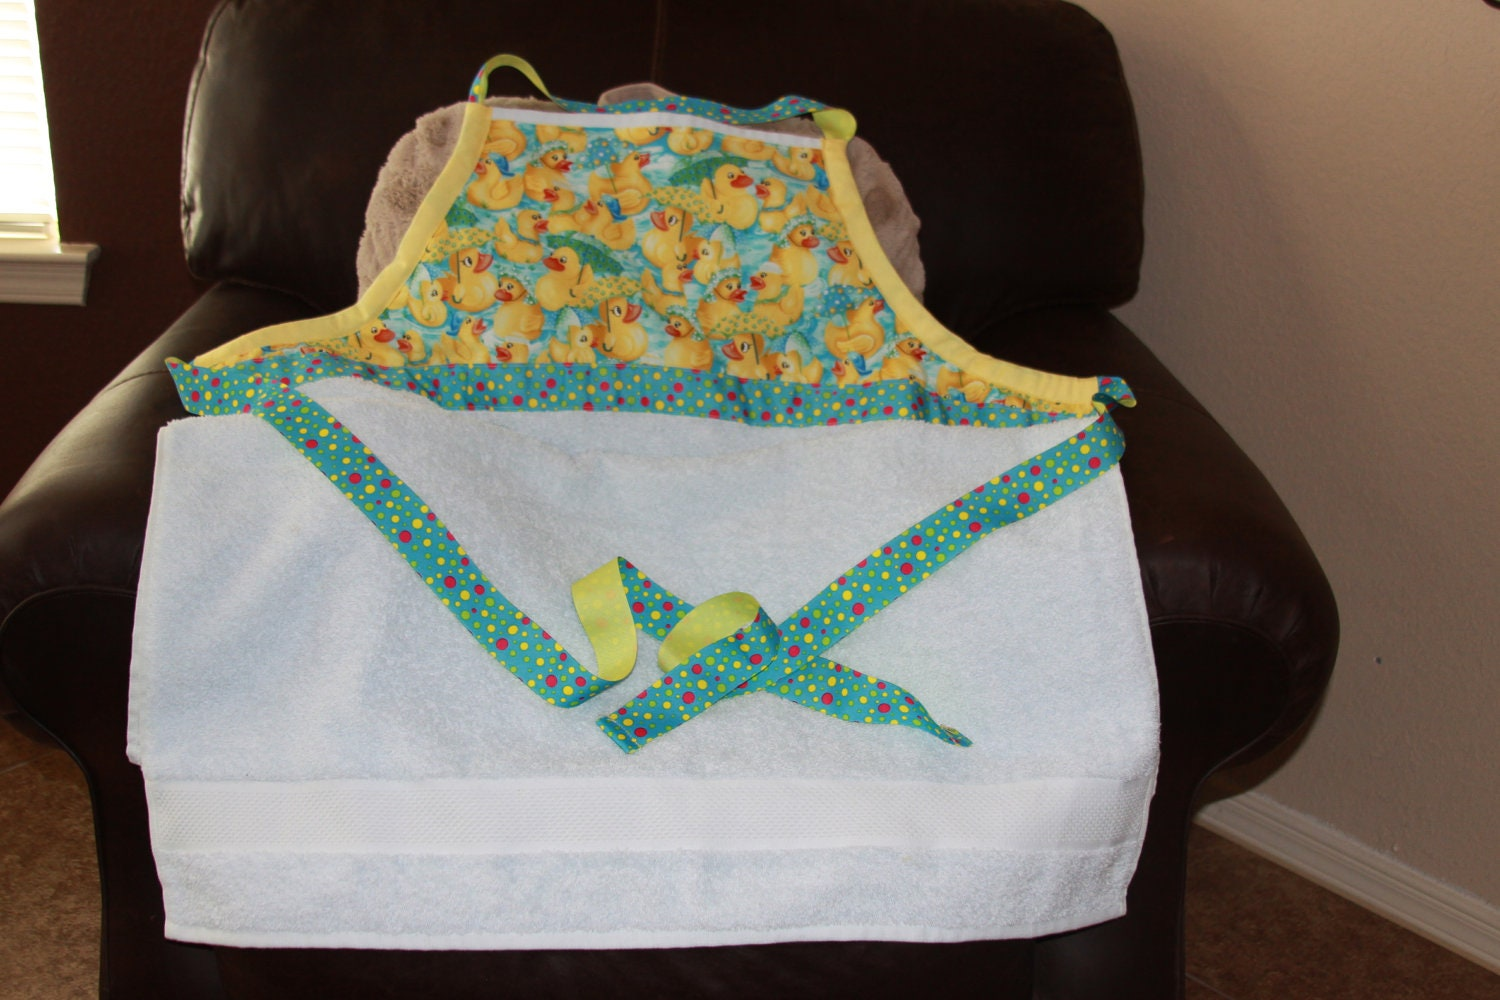 Gallery For > Baby Towel Apron - imgarcade.com